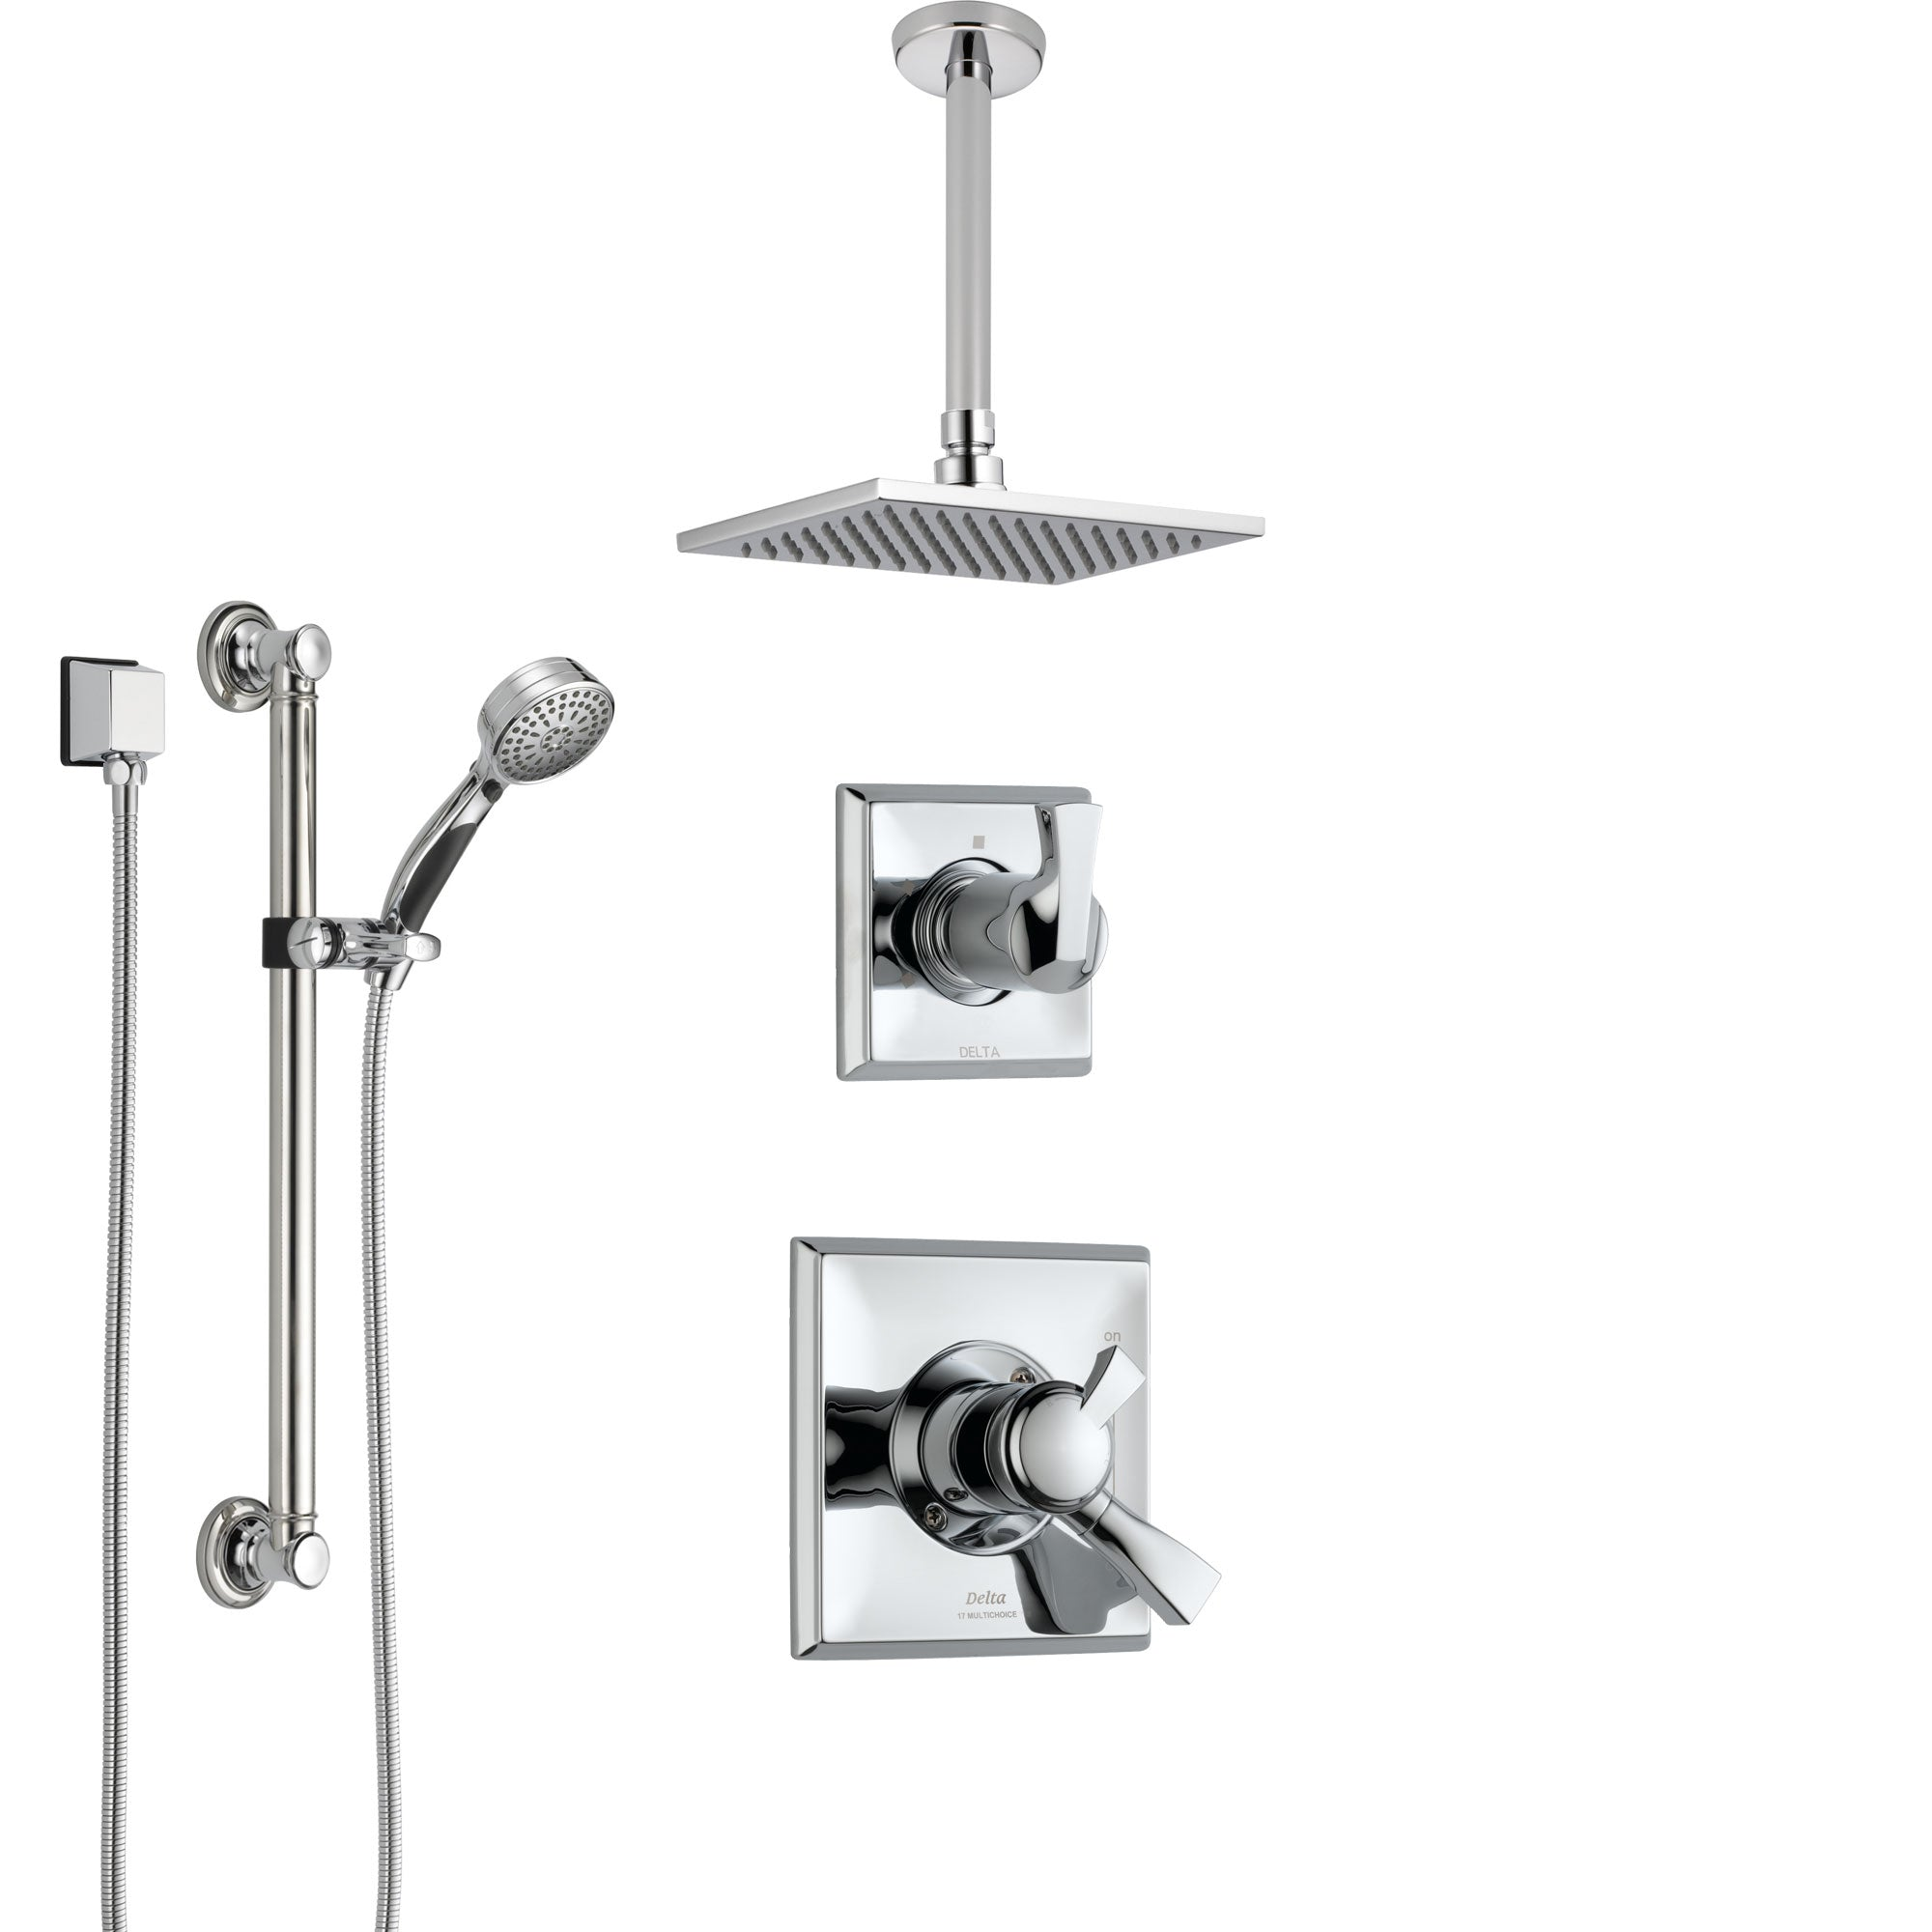 Delta Dryden Chrome Finish Shower System with Dual Control Handle, 3-Setting Diverter, Ceiling Mount Showerhead, and Hand Shower with Grab Bar SS17511